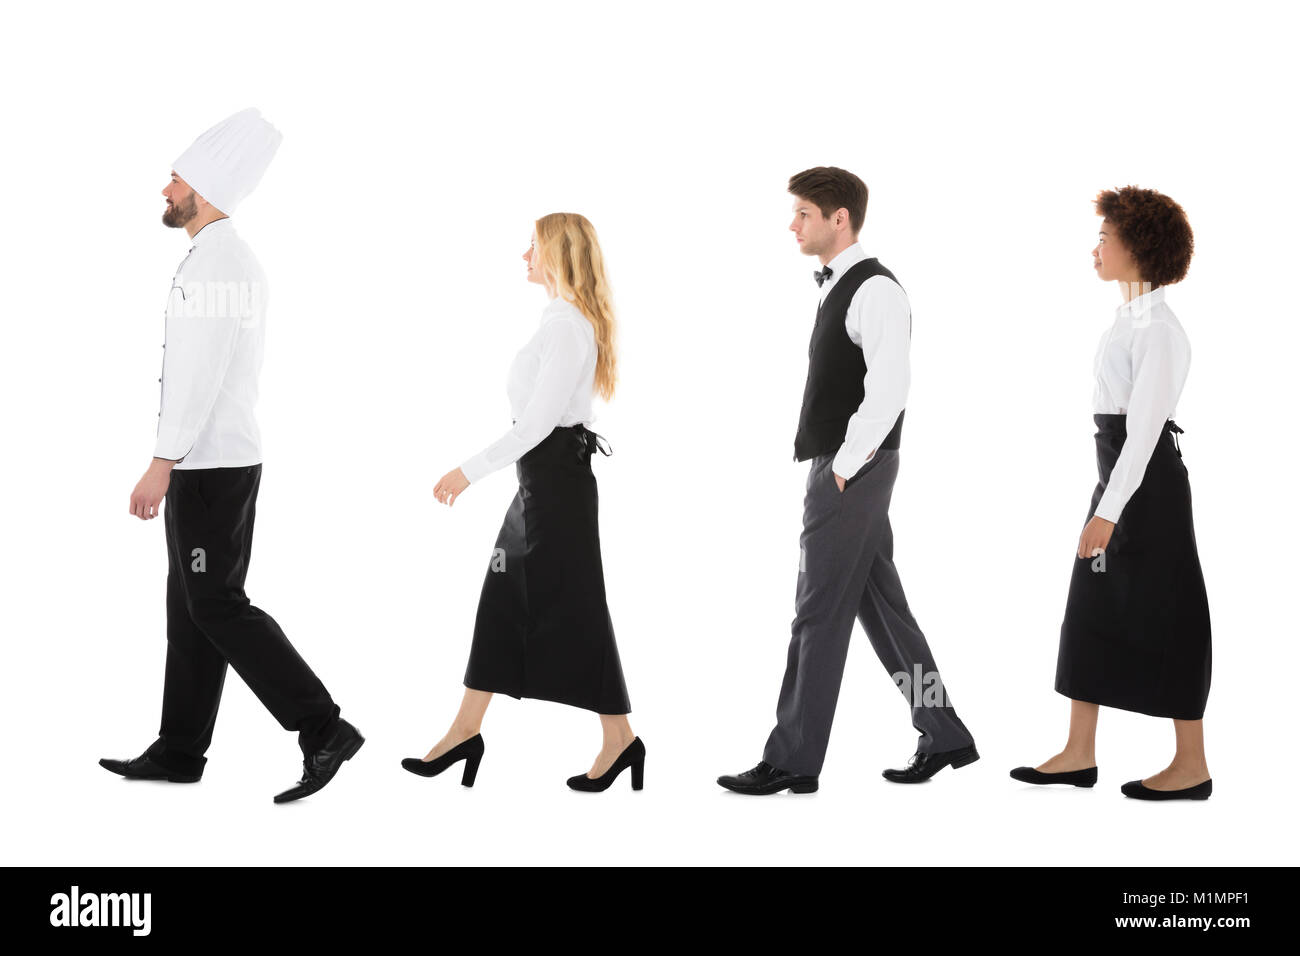 Young Restaurant Staff Walking In Row Against White Background Stock Photo